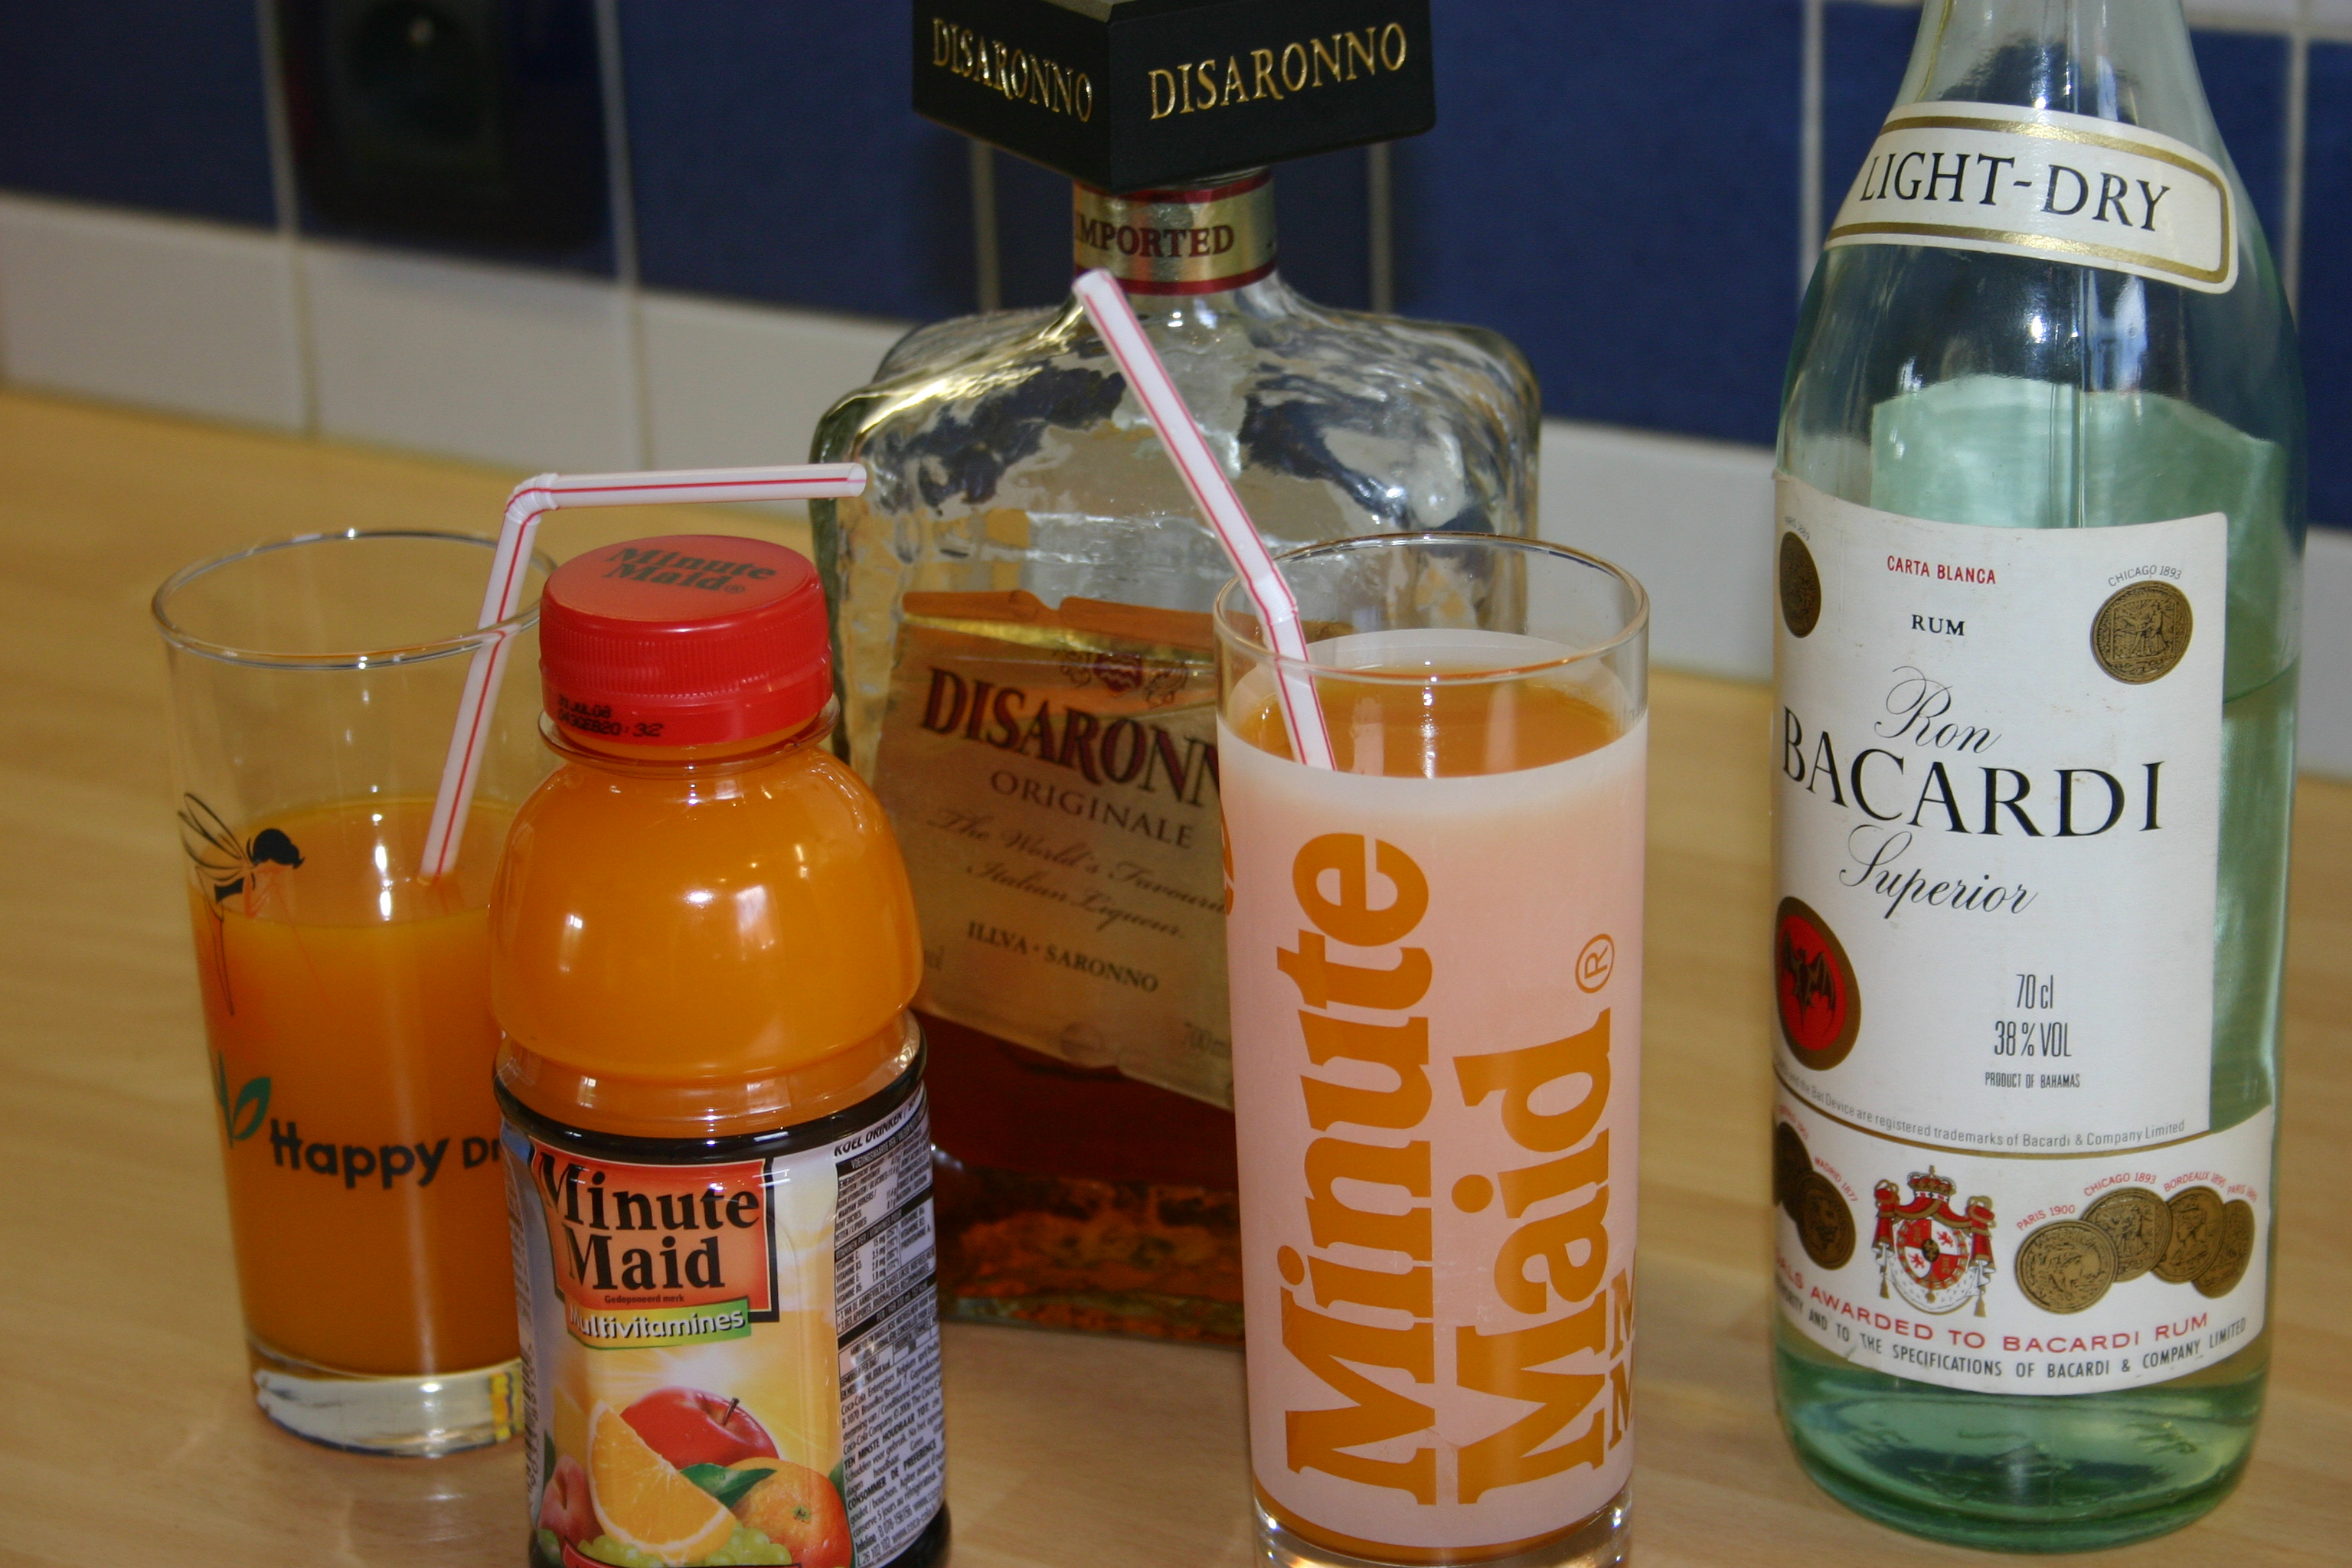 Minute maid cocktails